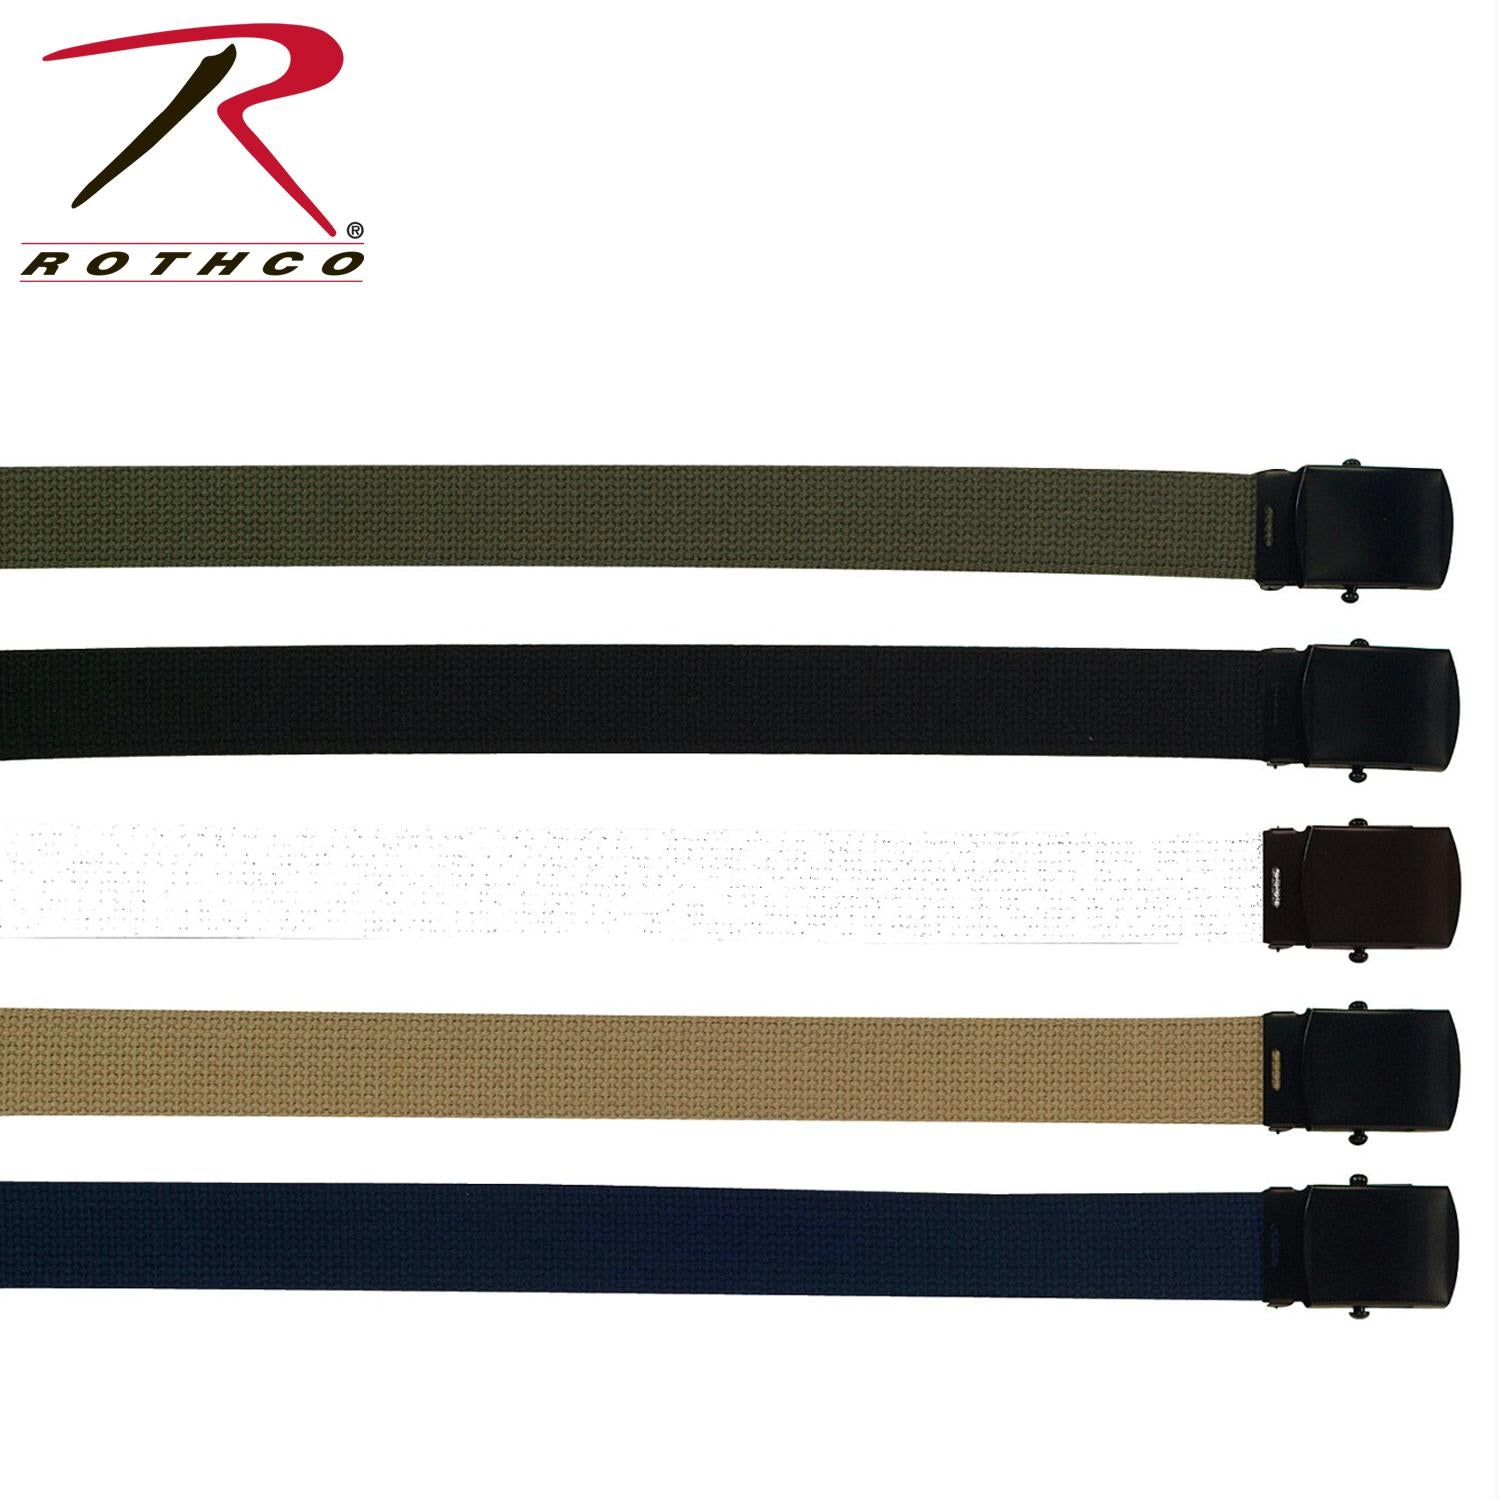 Rothco Military Web Belts w/ Black Buckle - Foliage Green / 54 Inches